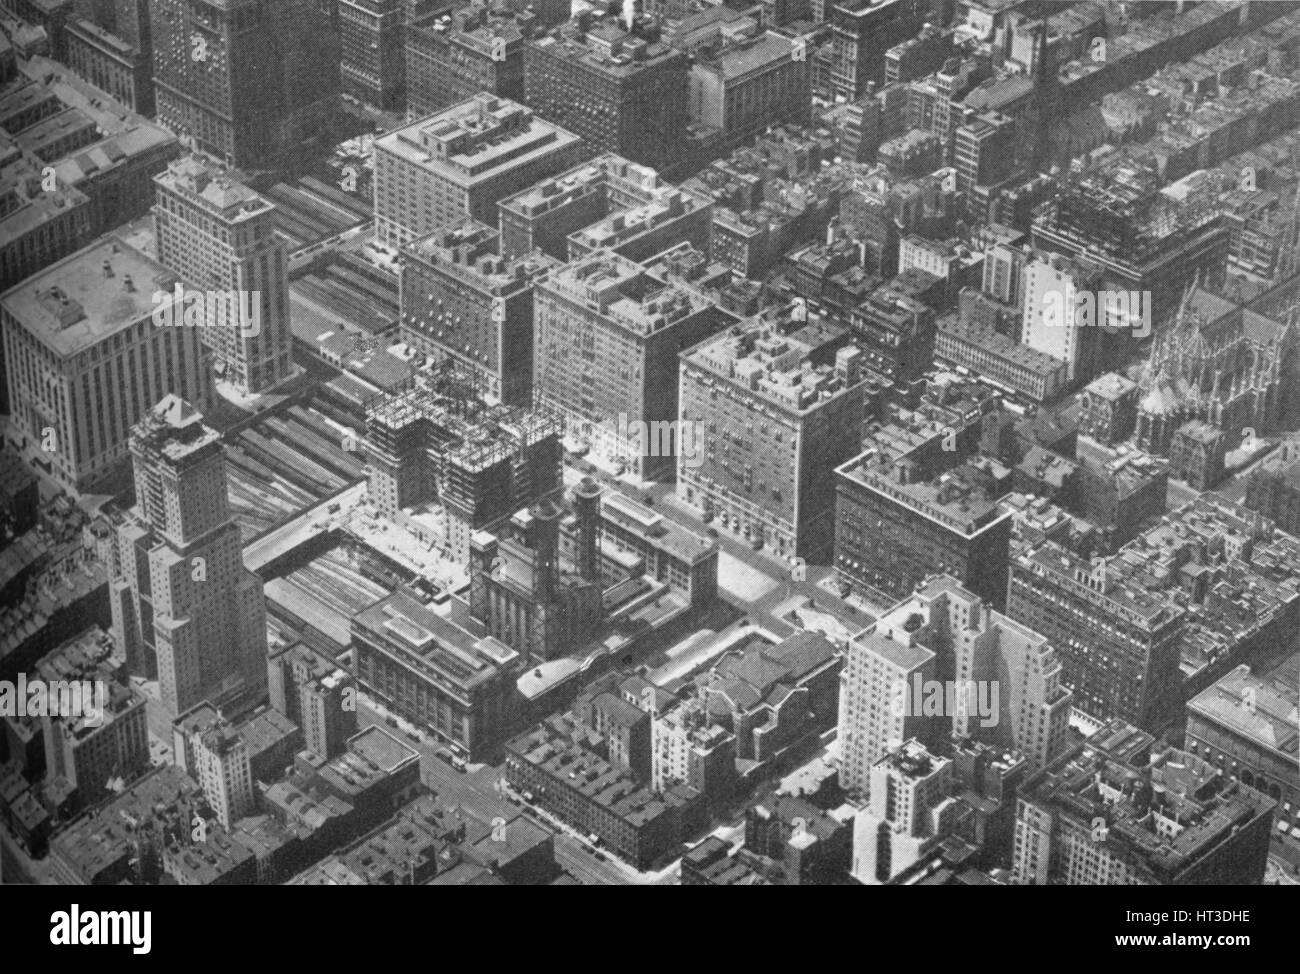 Aerial view of Grand Central District, New York City, showing the Shelton Hotel, 1926. Artist: Unknown. - Stock Image